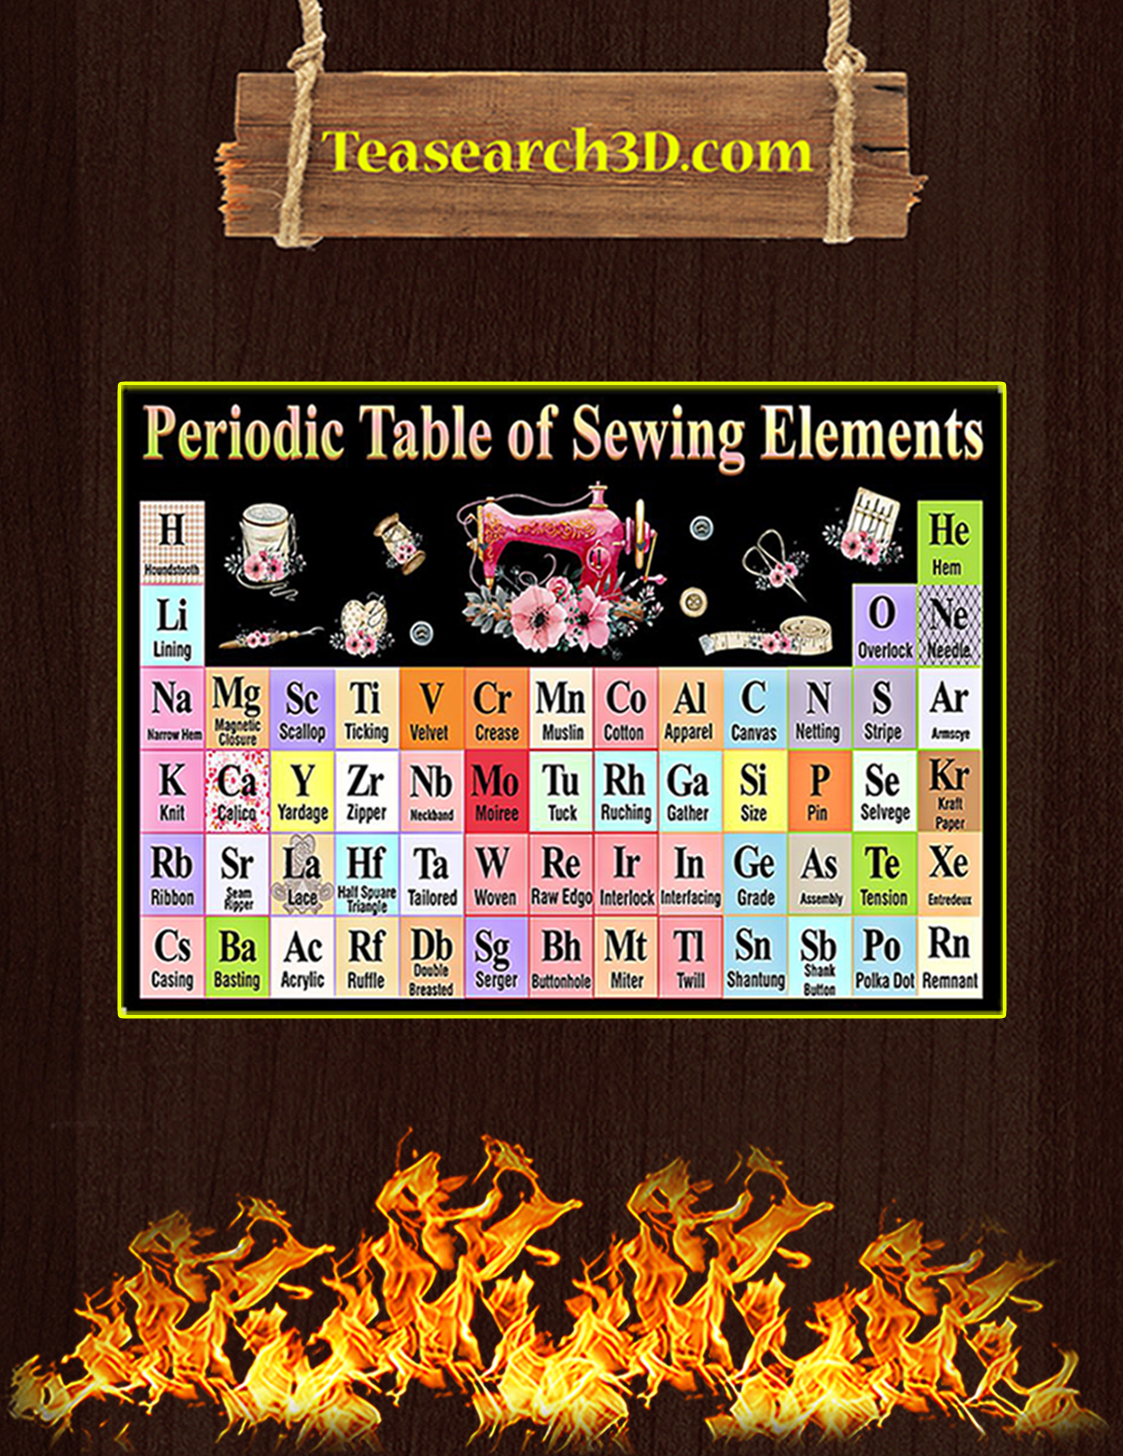 Periodic table of sewing elements poster A3